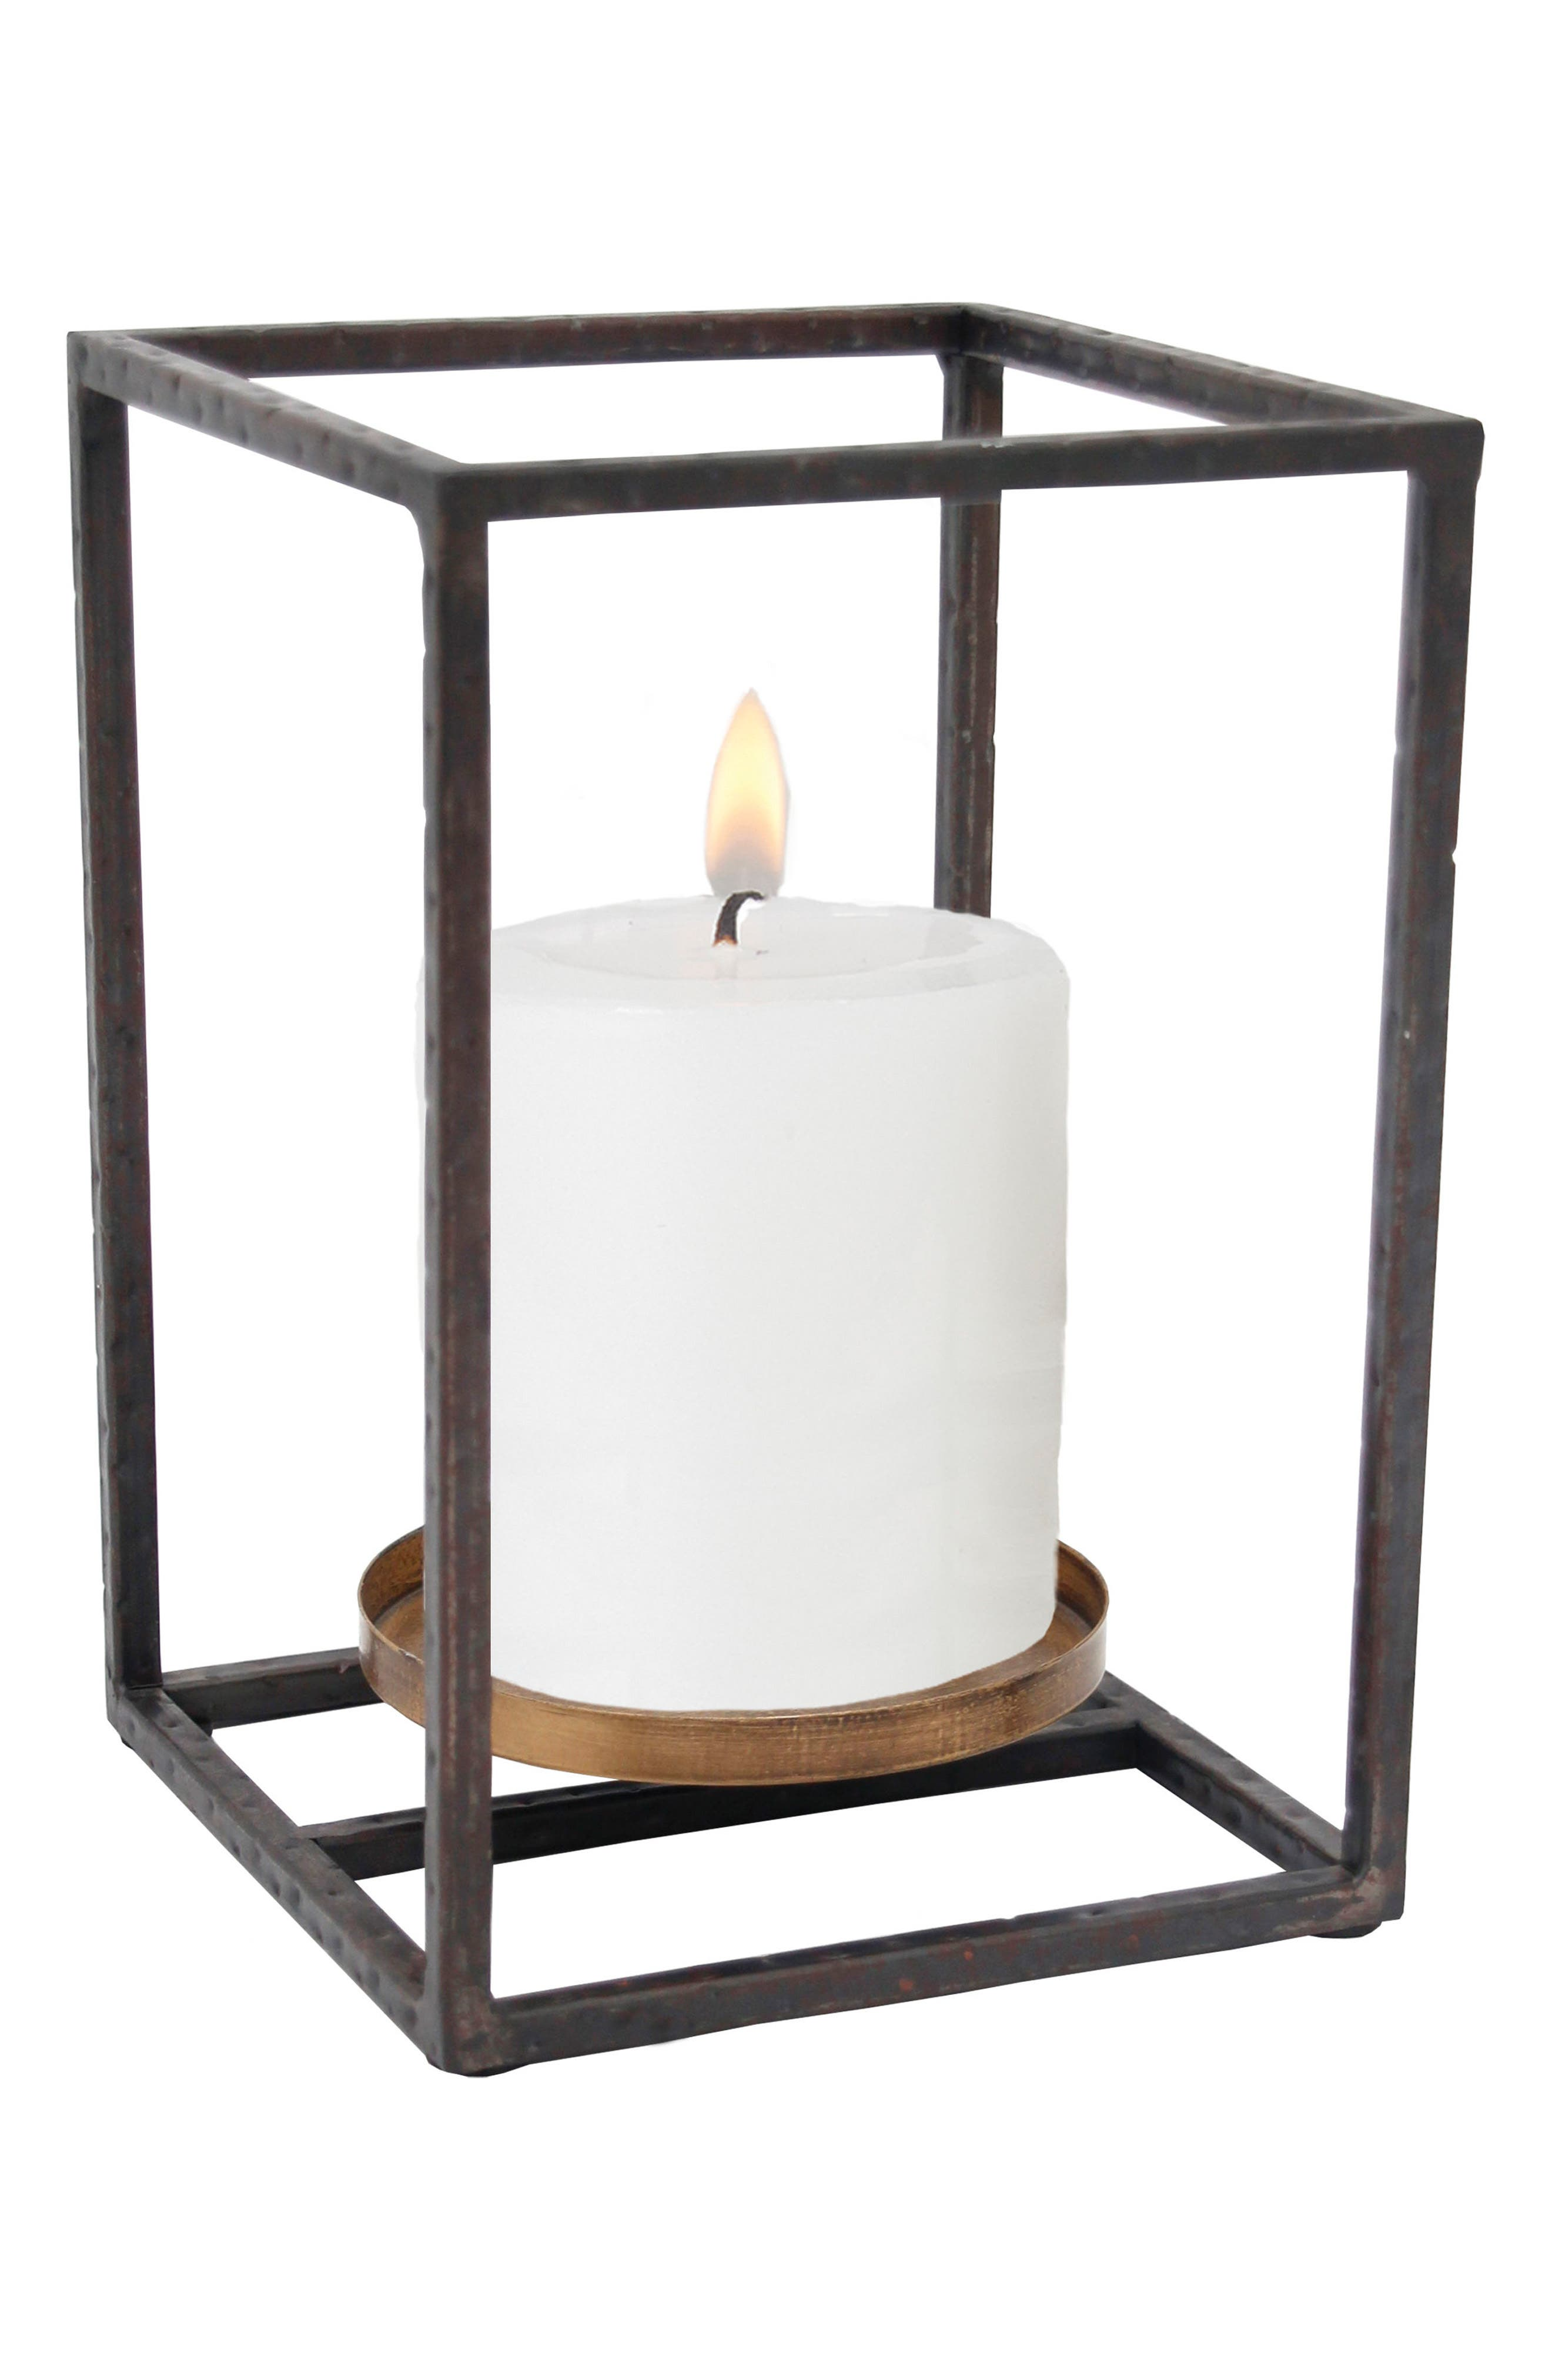 Alternate Image 1 Selected - Foreside Small Cube Pillar Candle Holder